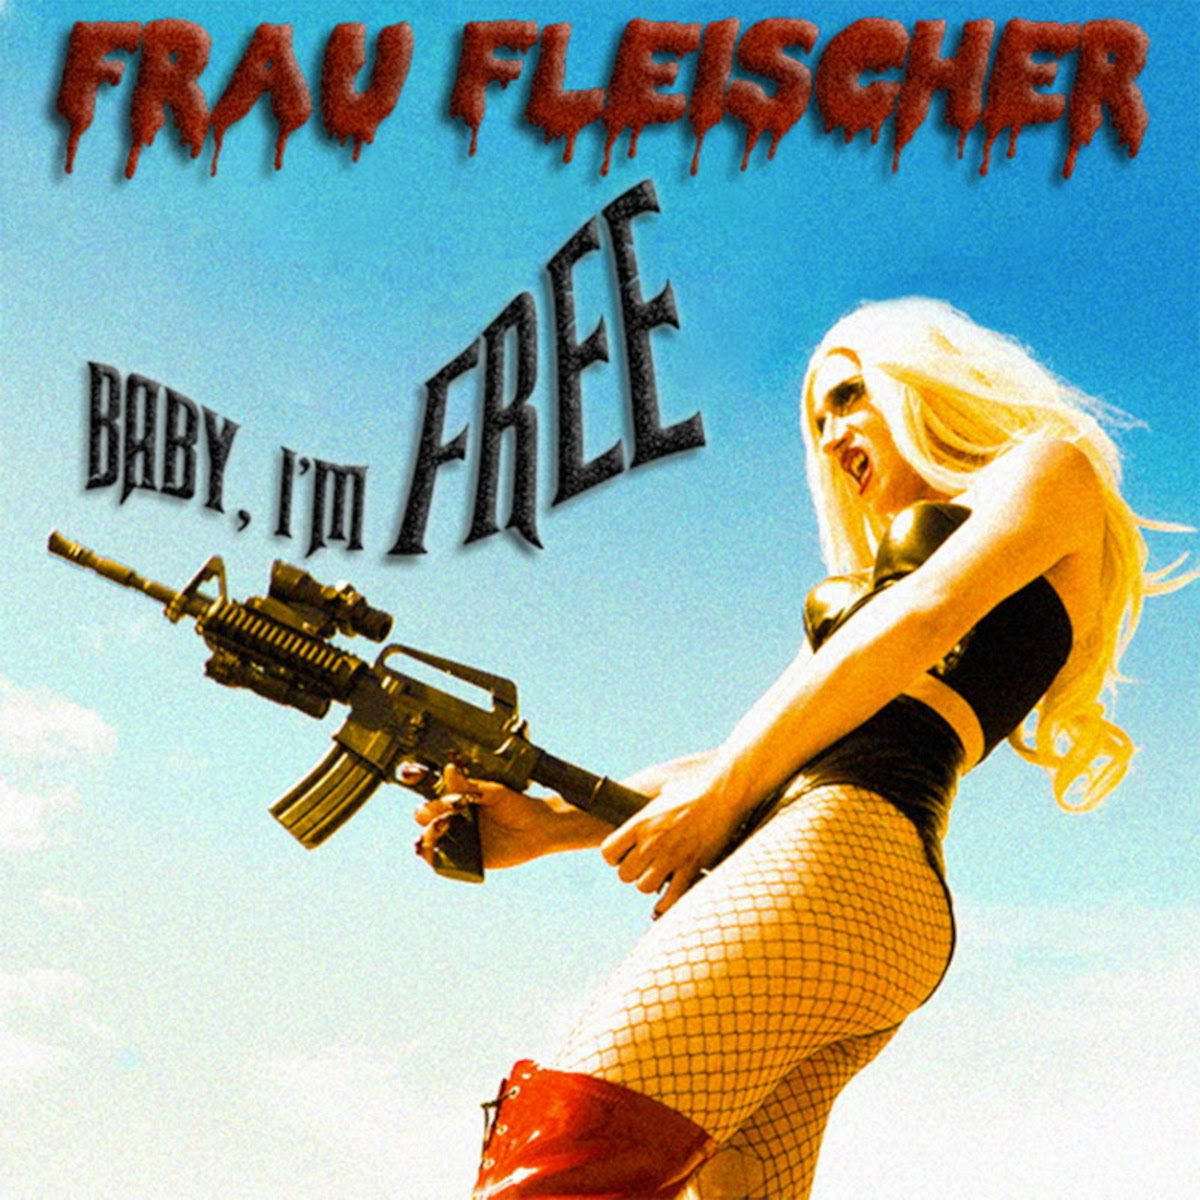 Frau Fleischer release new single/official video 'Baby I'm Free'